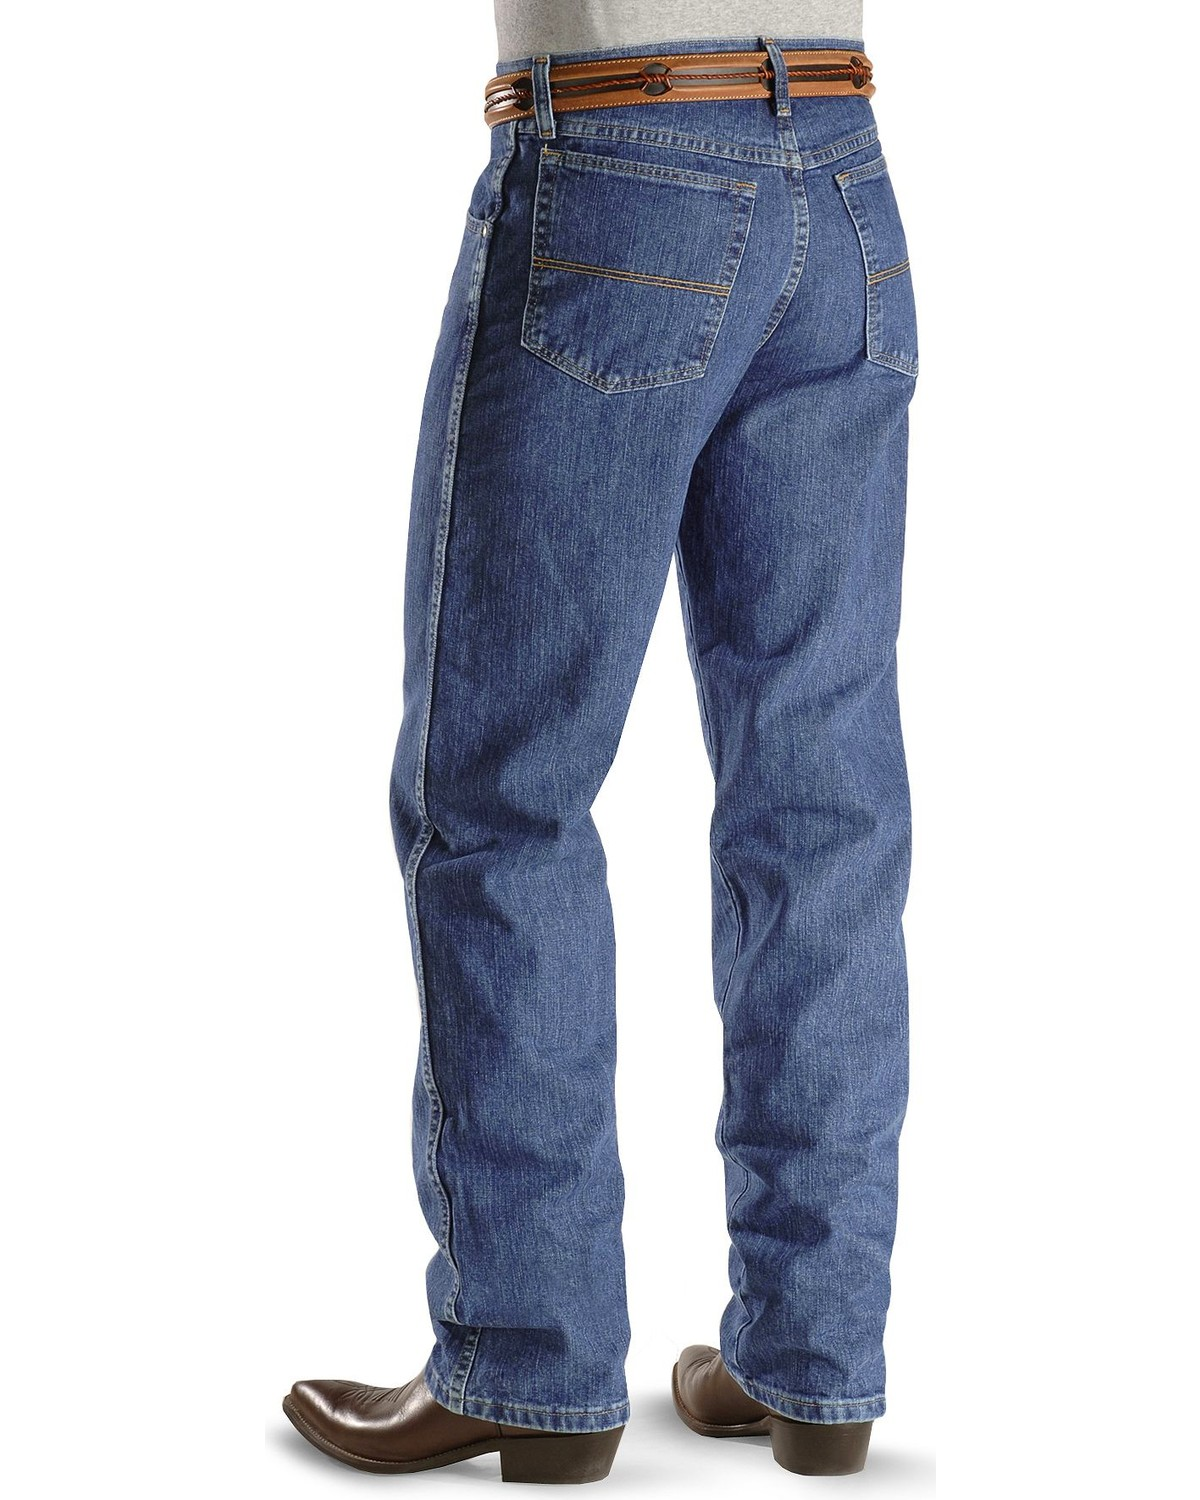 50d6b221 Zoomed Image Wrangler Men's No.23 Relaxed Fit Jeans, Vintage Blue, ...